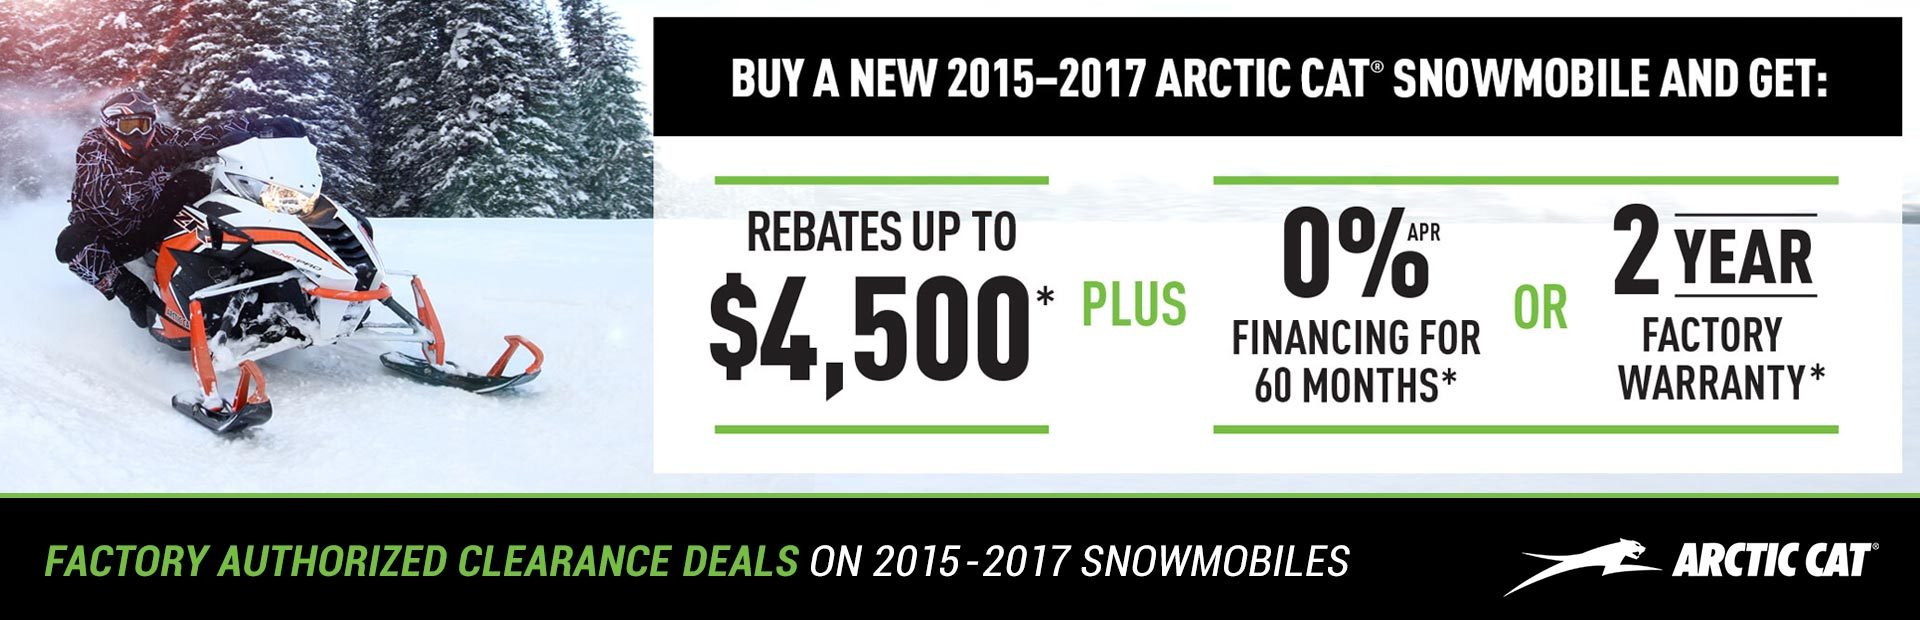 Arctic Cat Factory Authorized Clearance